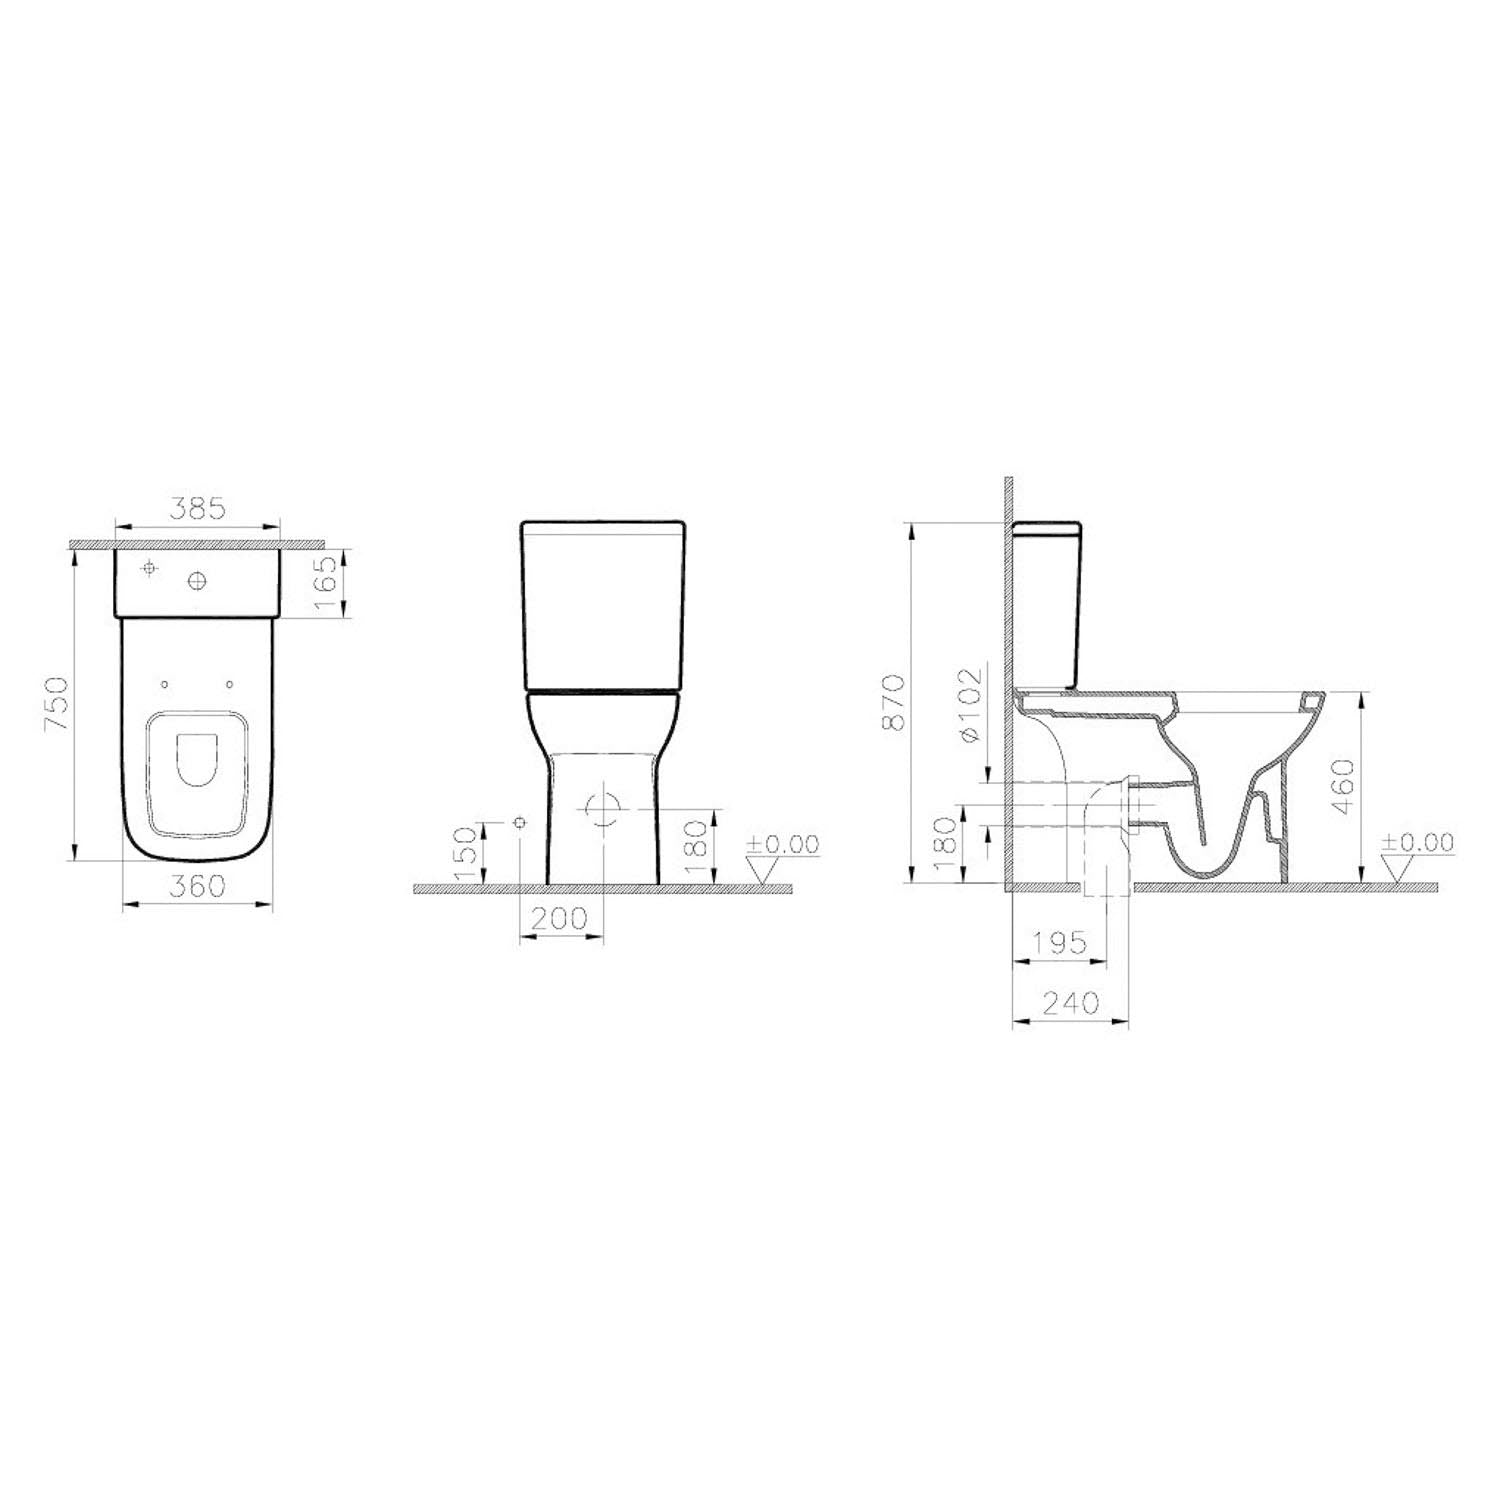 Consilio Comfort Height Close Coupled Toilet with the seat dimensional drawing